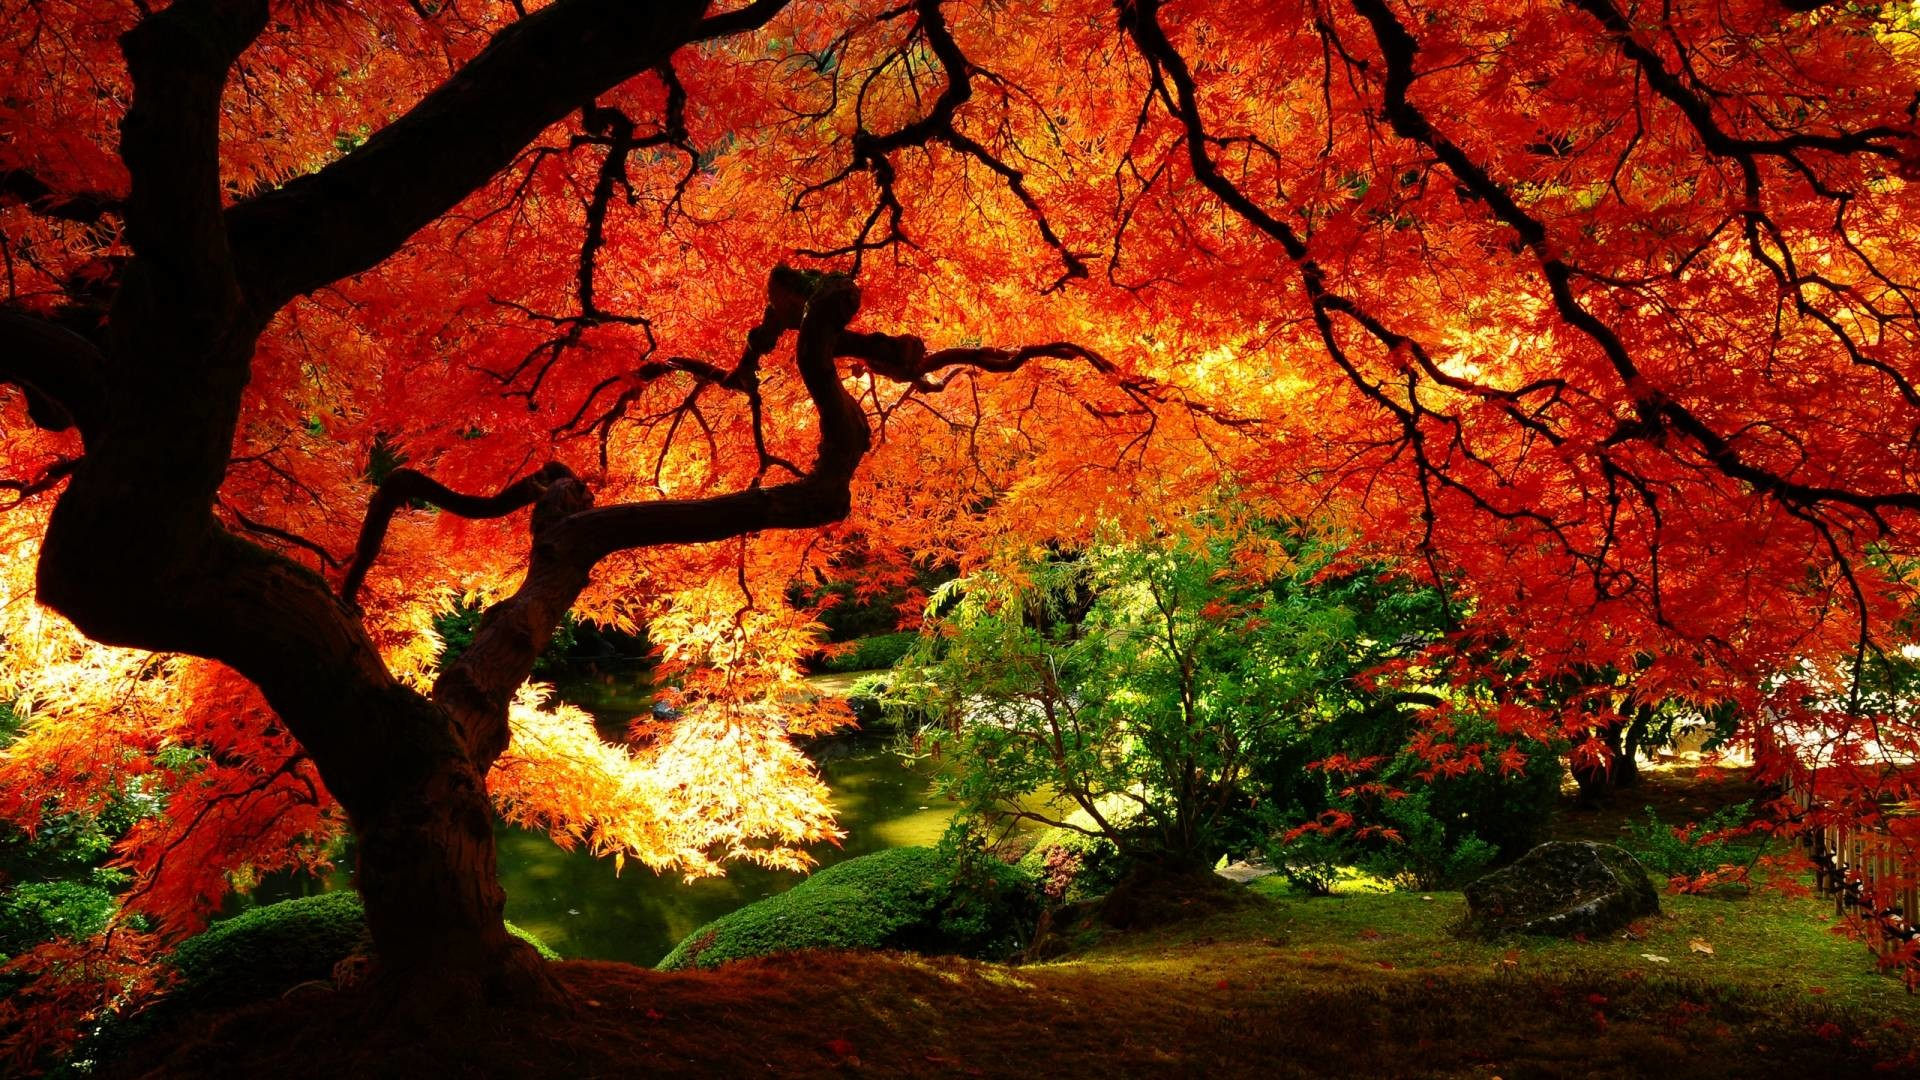 Fall Computer Wallpaper Backgrounds 64 images 1920x1080